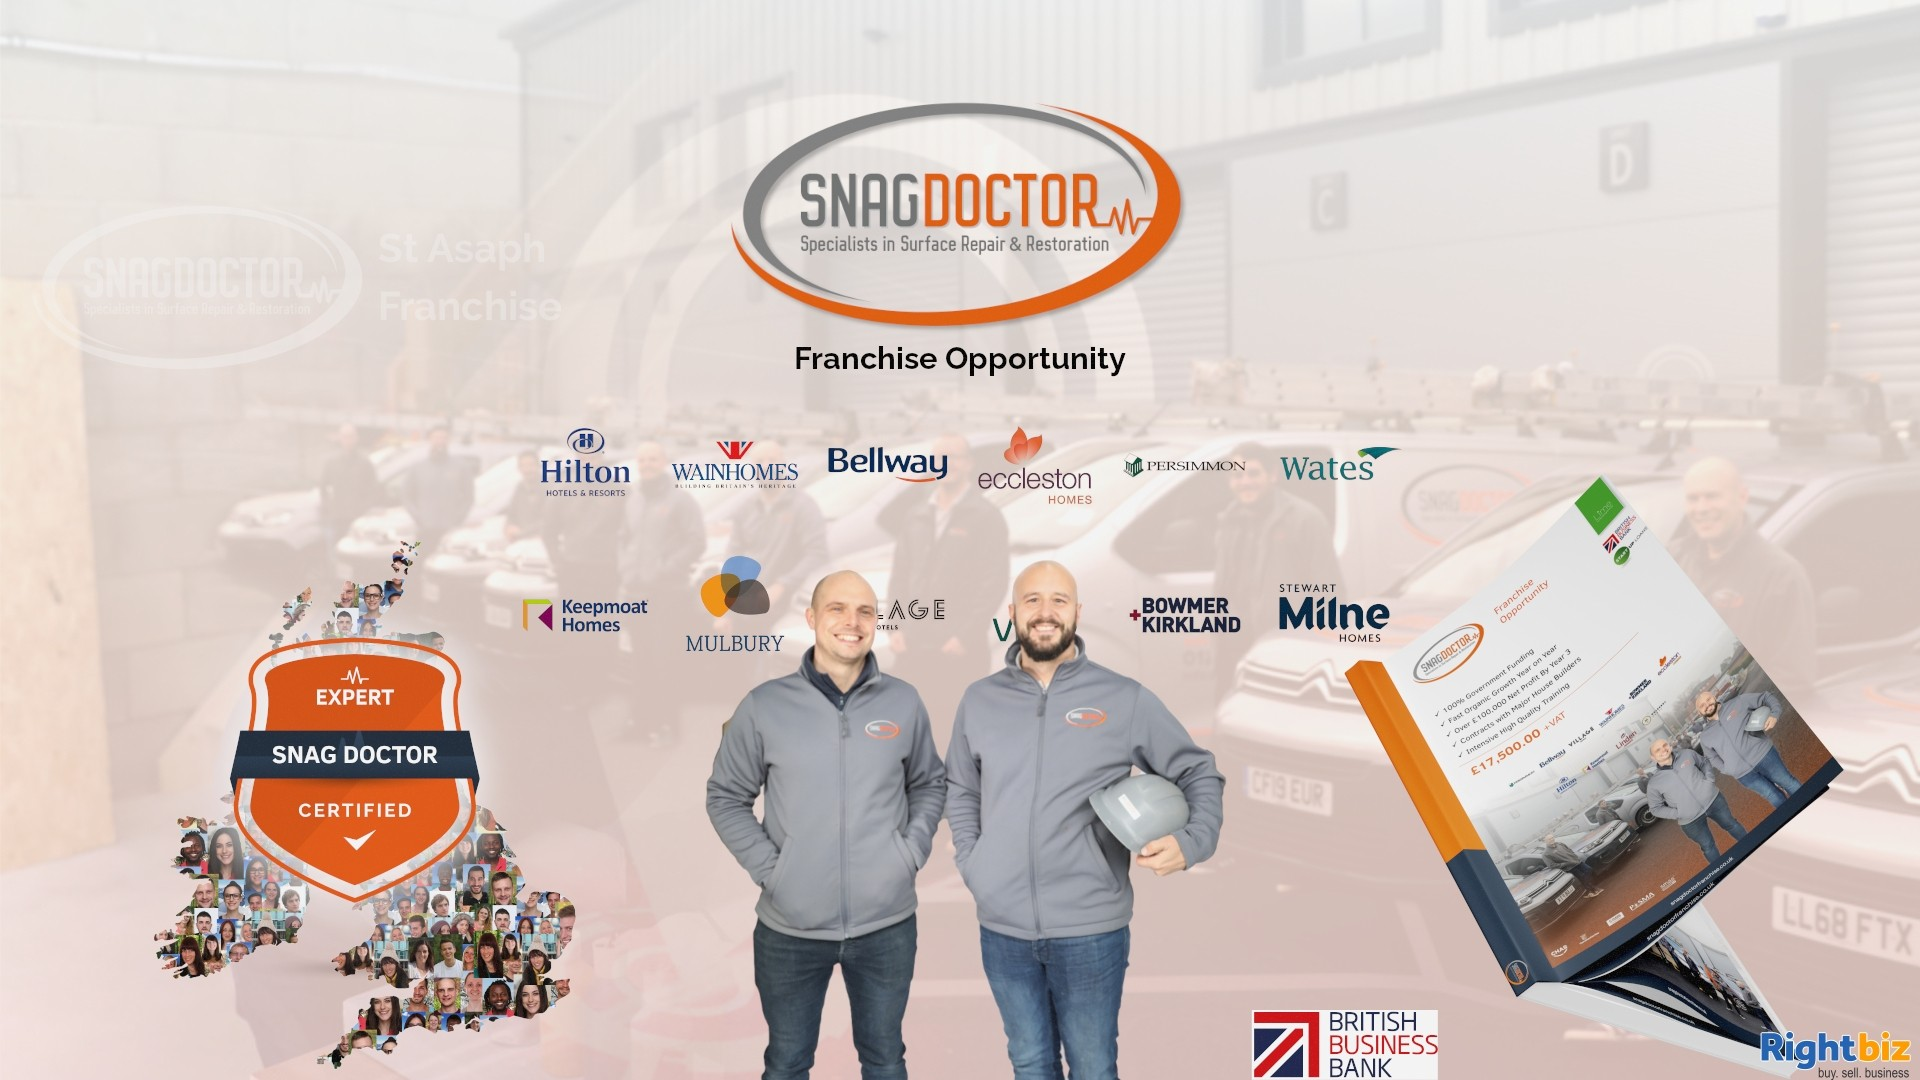 Snag Doctor 100% Govt Funded Franchise in Saint Asaph With Huge Demand from Major House Builders - Image 1